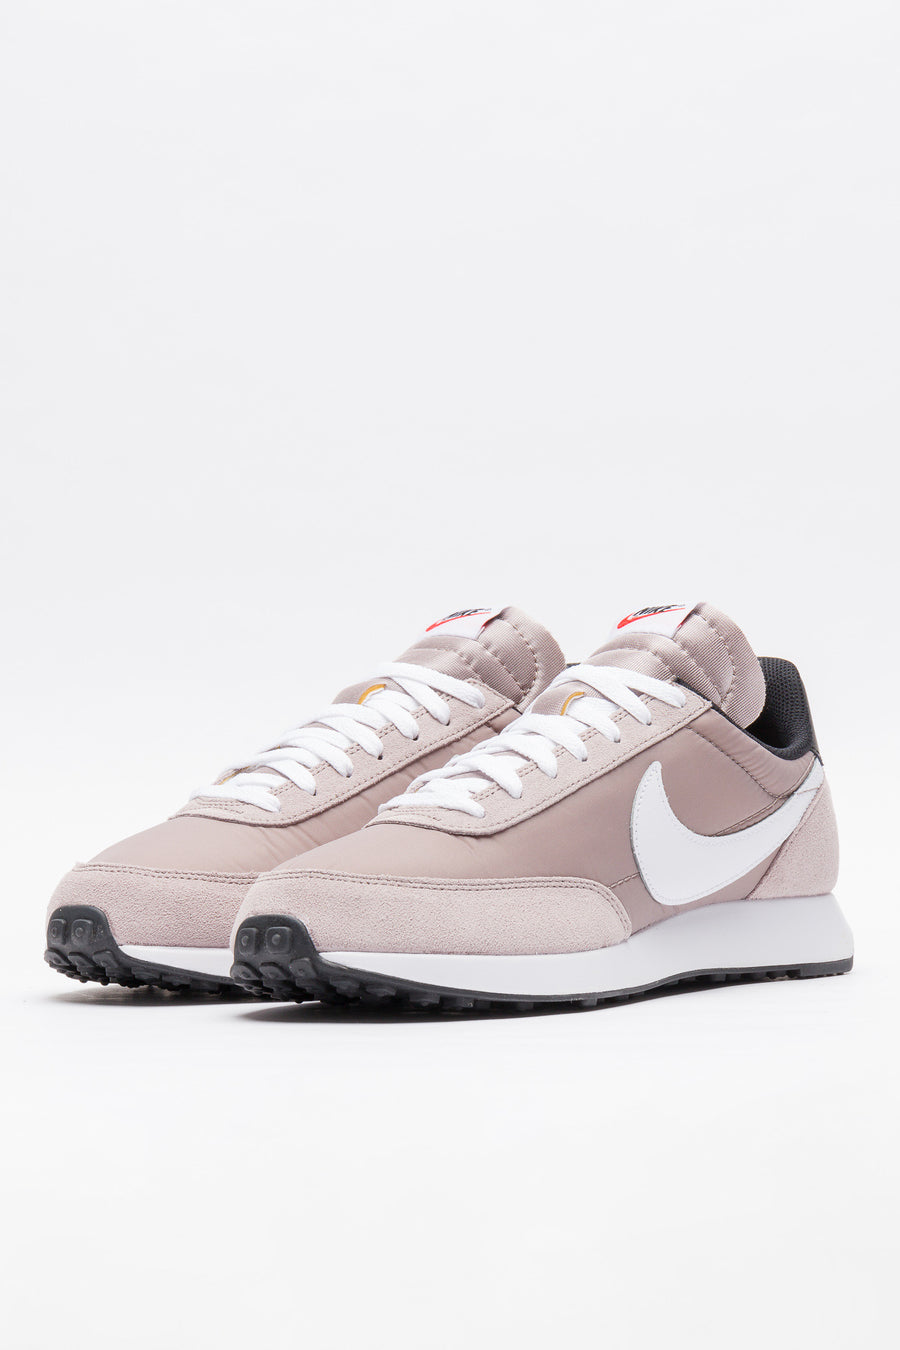 Nike Air Tailwind 79 in Pumice/White - Notre